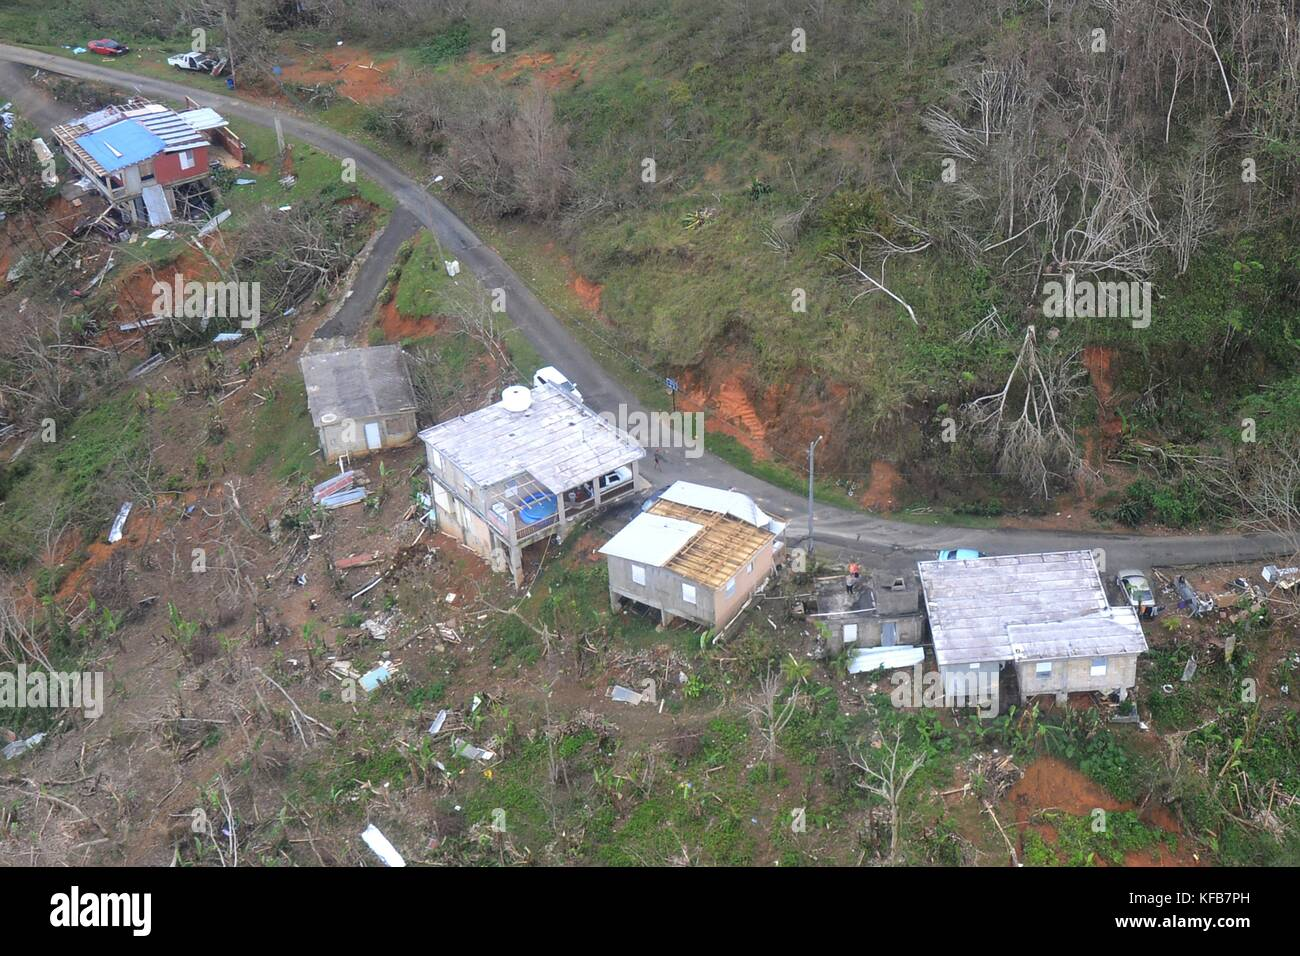 Aerial view of the damage in the aftermath of Hurricane Maria October 14, 2017 in Jayuya, Puerto Rico.   (photo - Stock Image